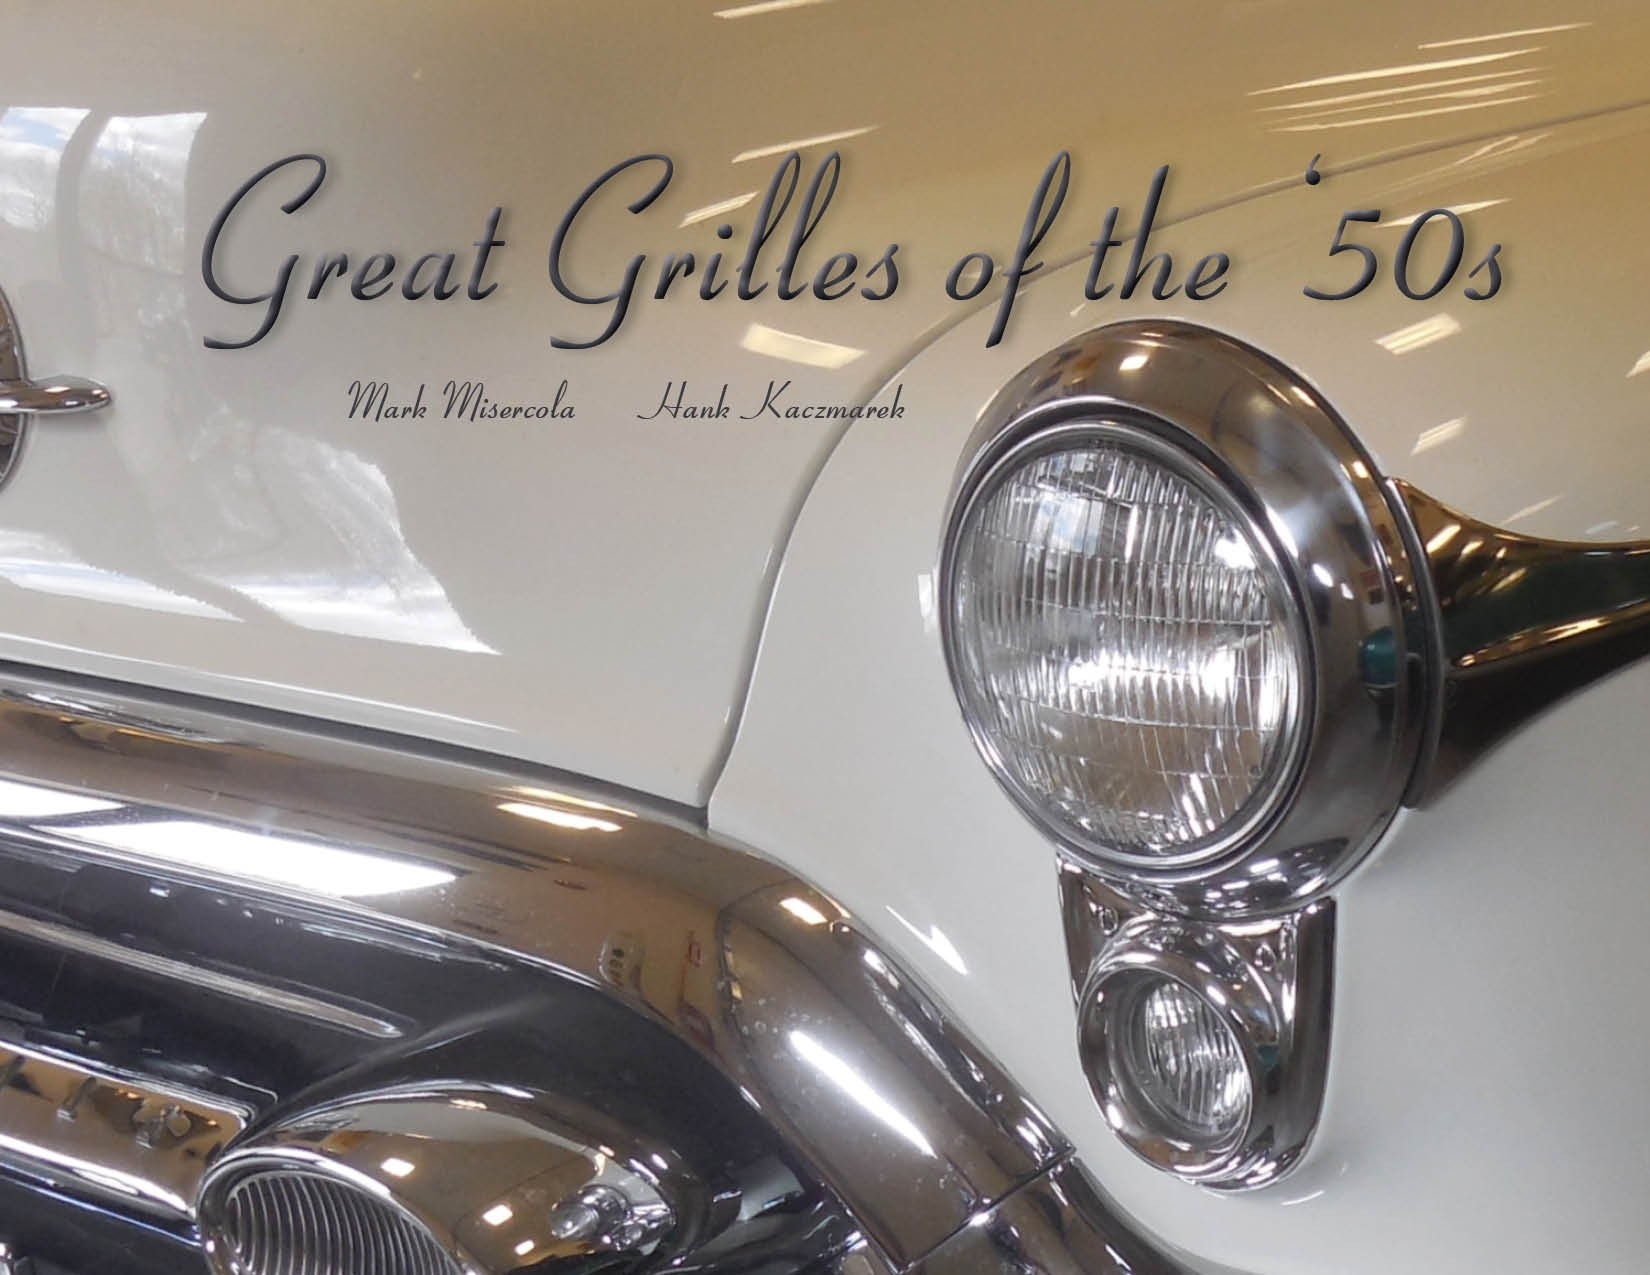 1950s car grilles book front cover